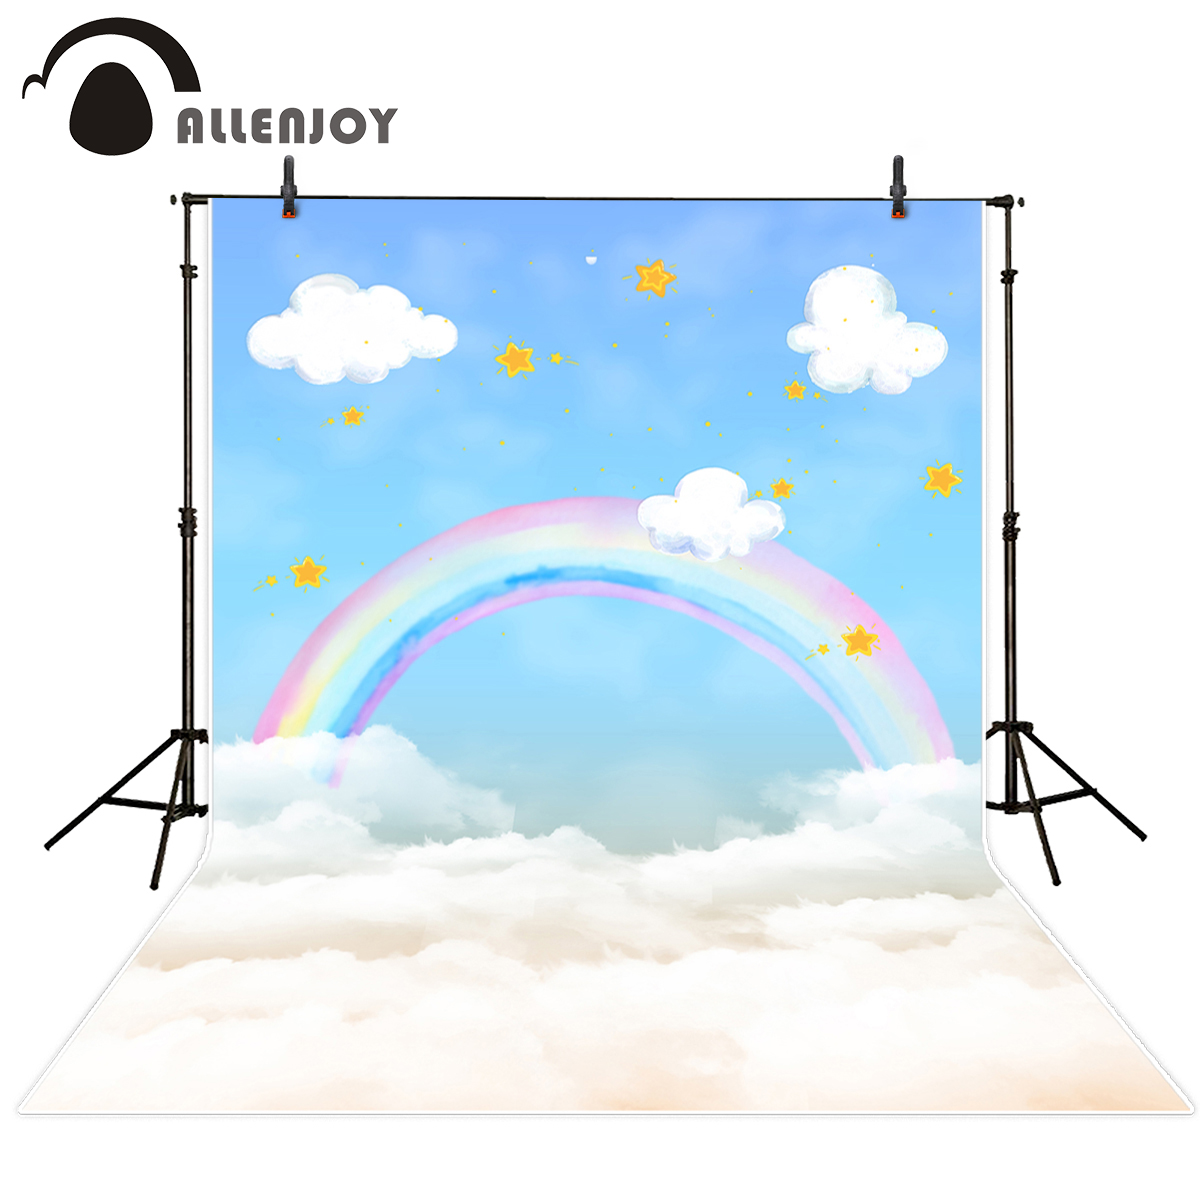 Allenjoy Vinyl photography The sky Stars Gold Rainbow cloud photography backdrop personal custom Partner name backdrop allenjoy photography backdrop black flag